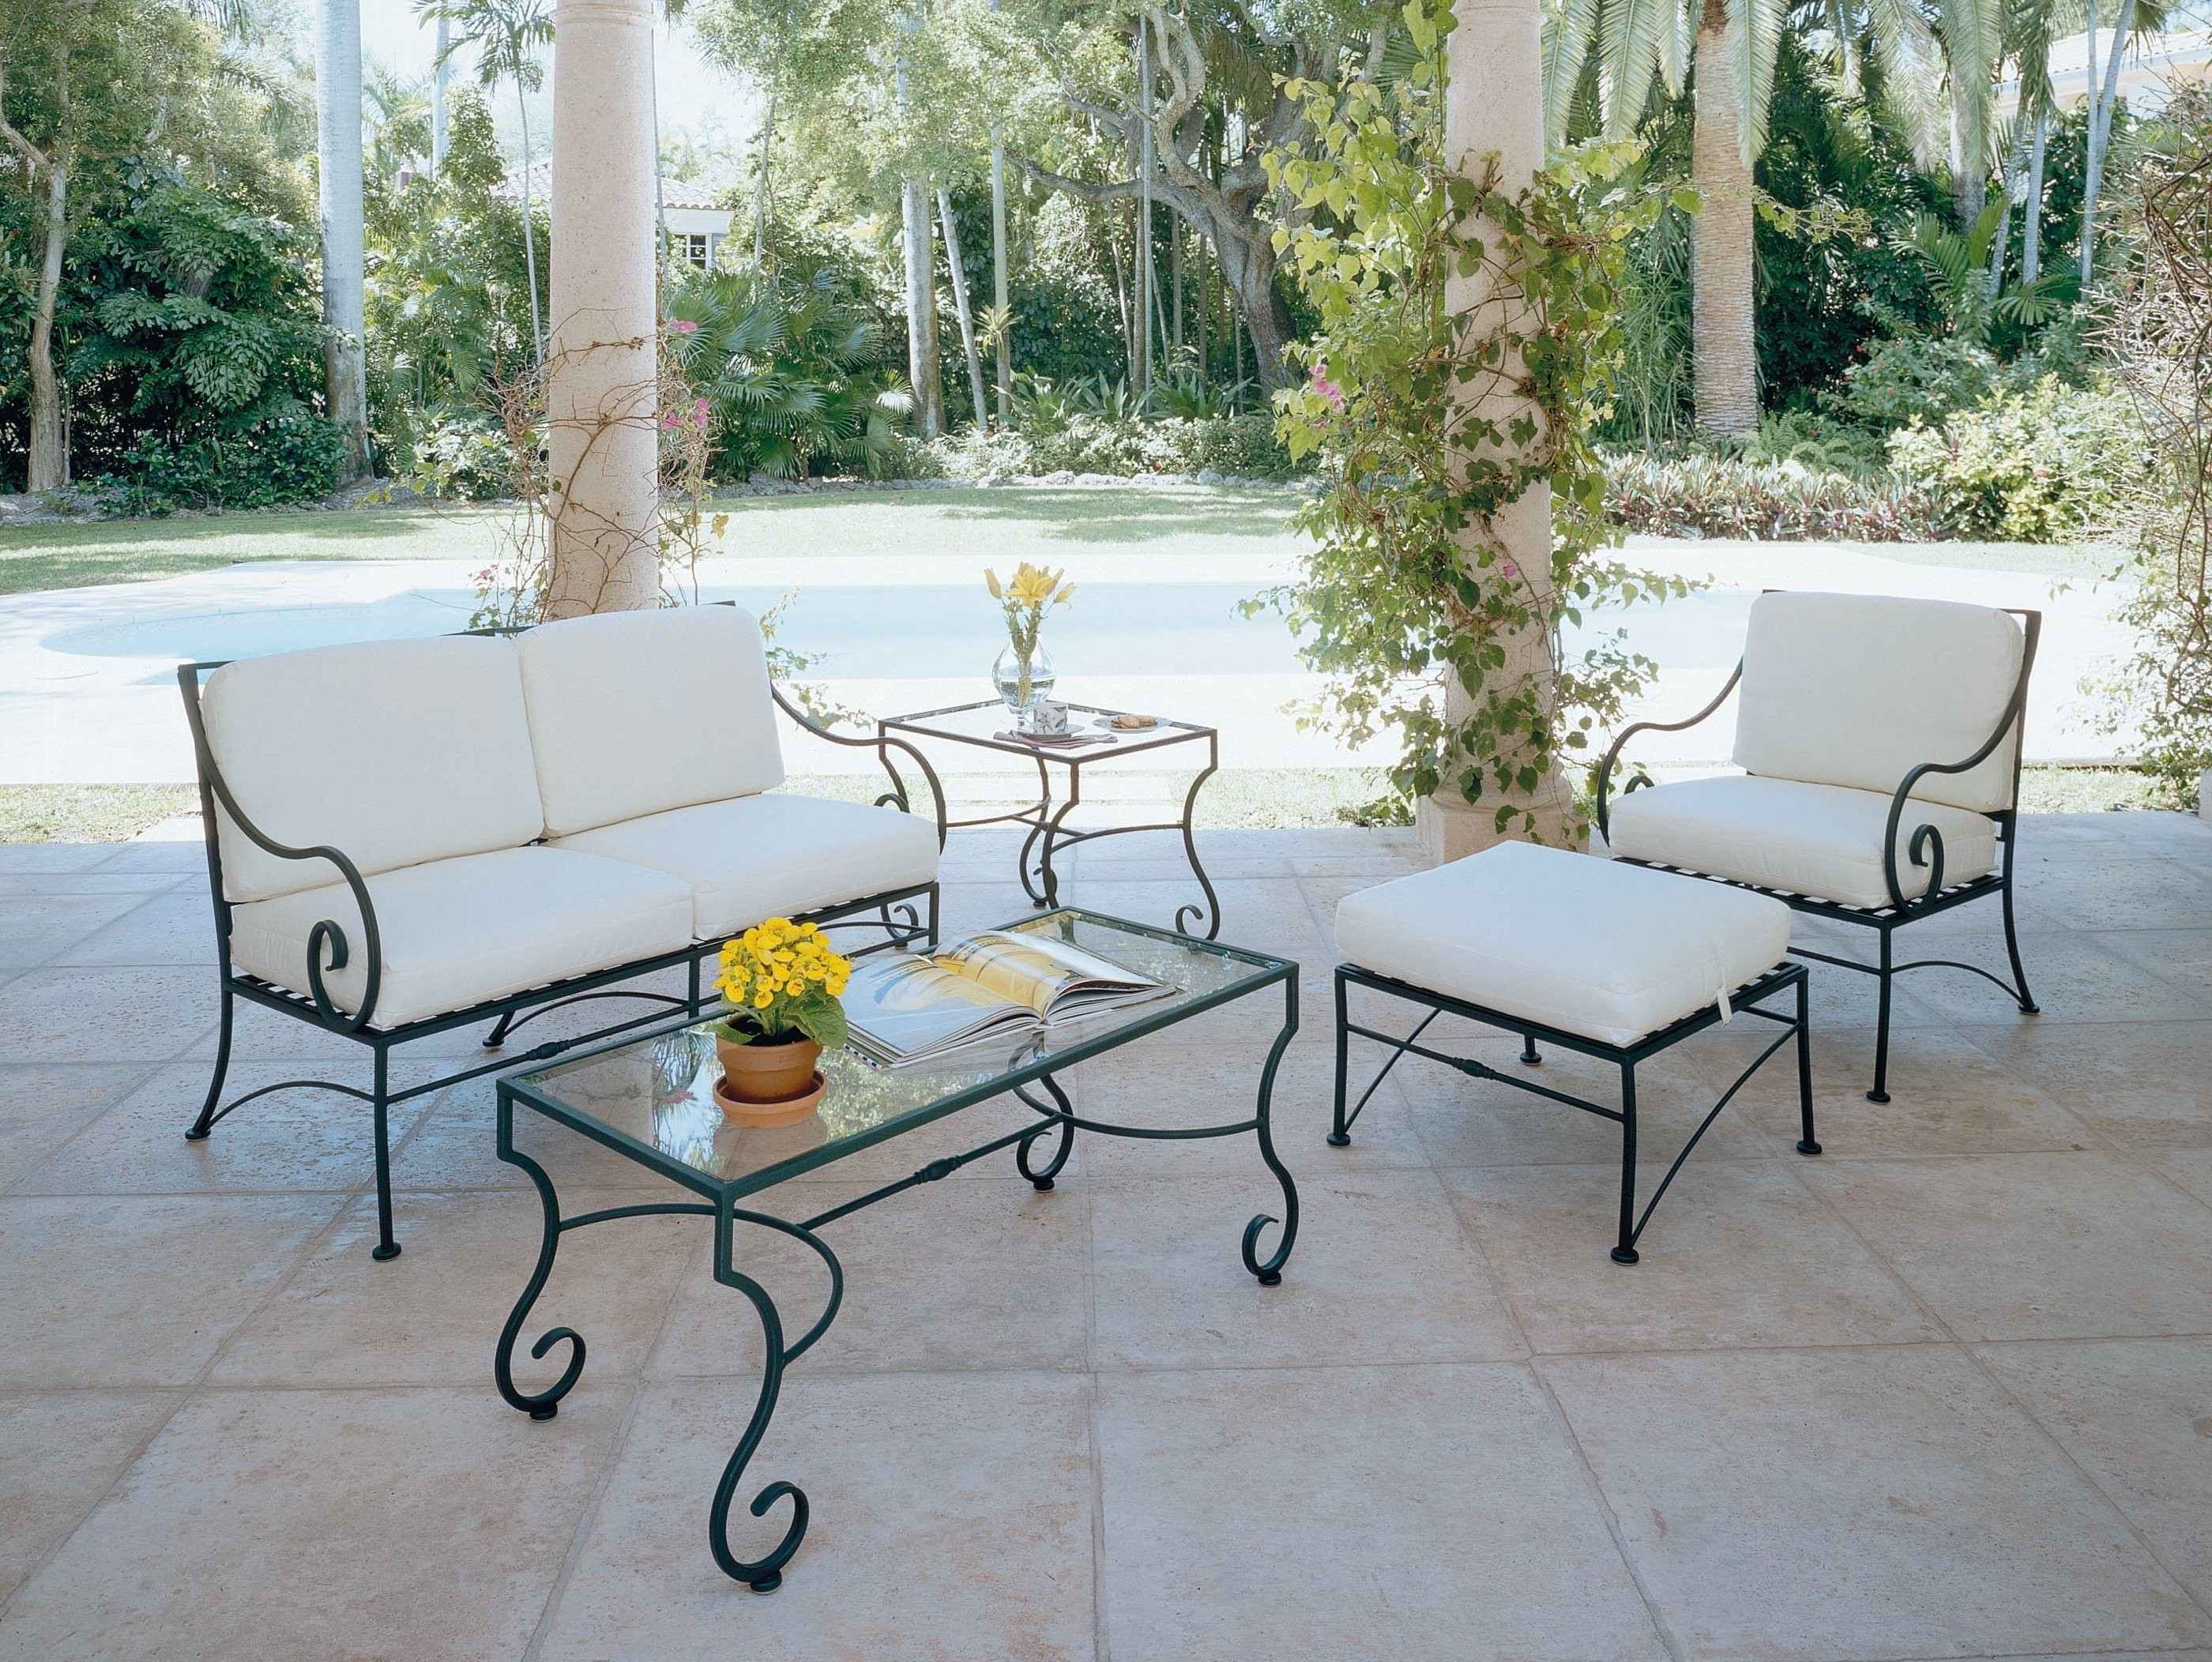 Widely Used Wrought Iron Patio Conversation Sets With Patio : Rot Iron Patio Furniture Wrought Refinishing Outdoor Cast (View 2 of 15)